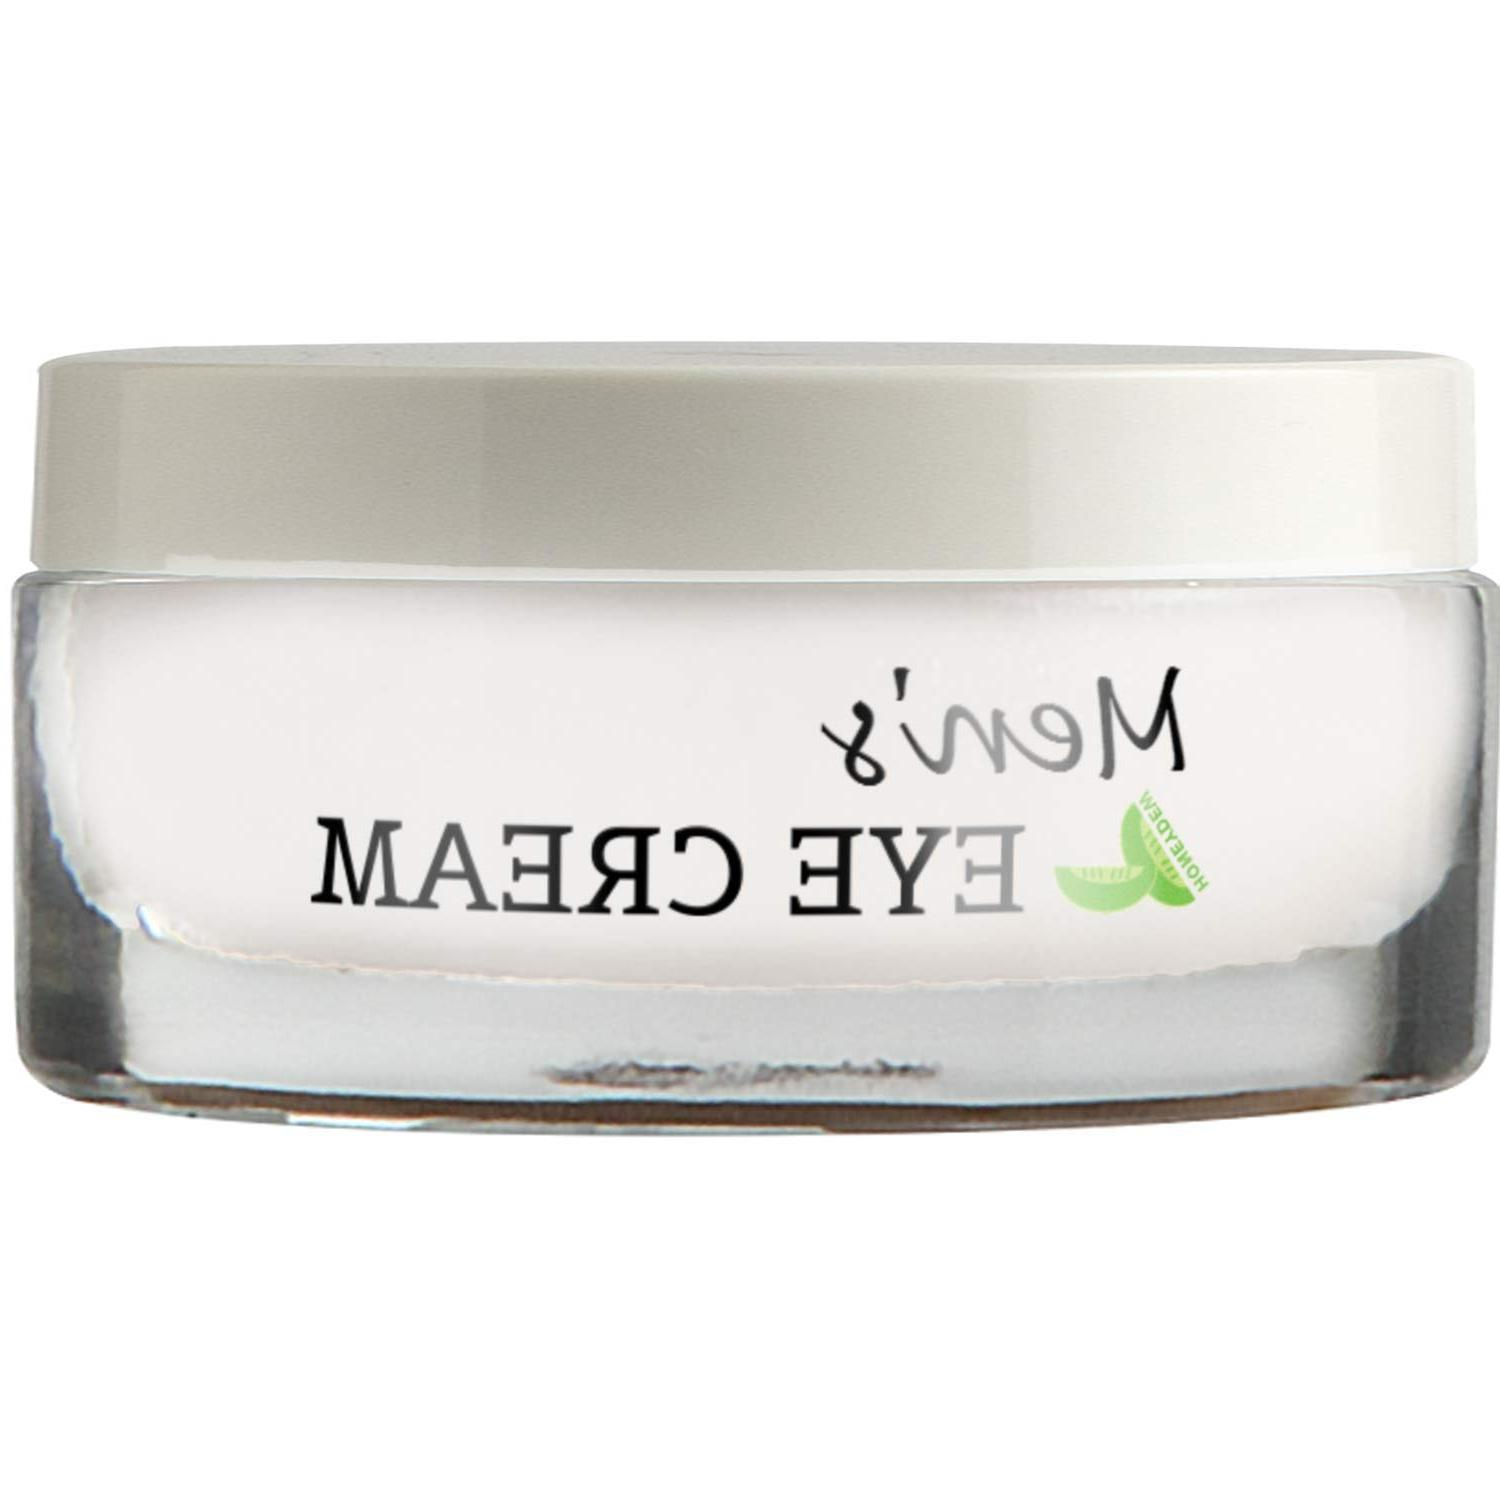 natural eye cream for men aging benefits